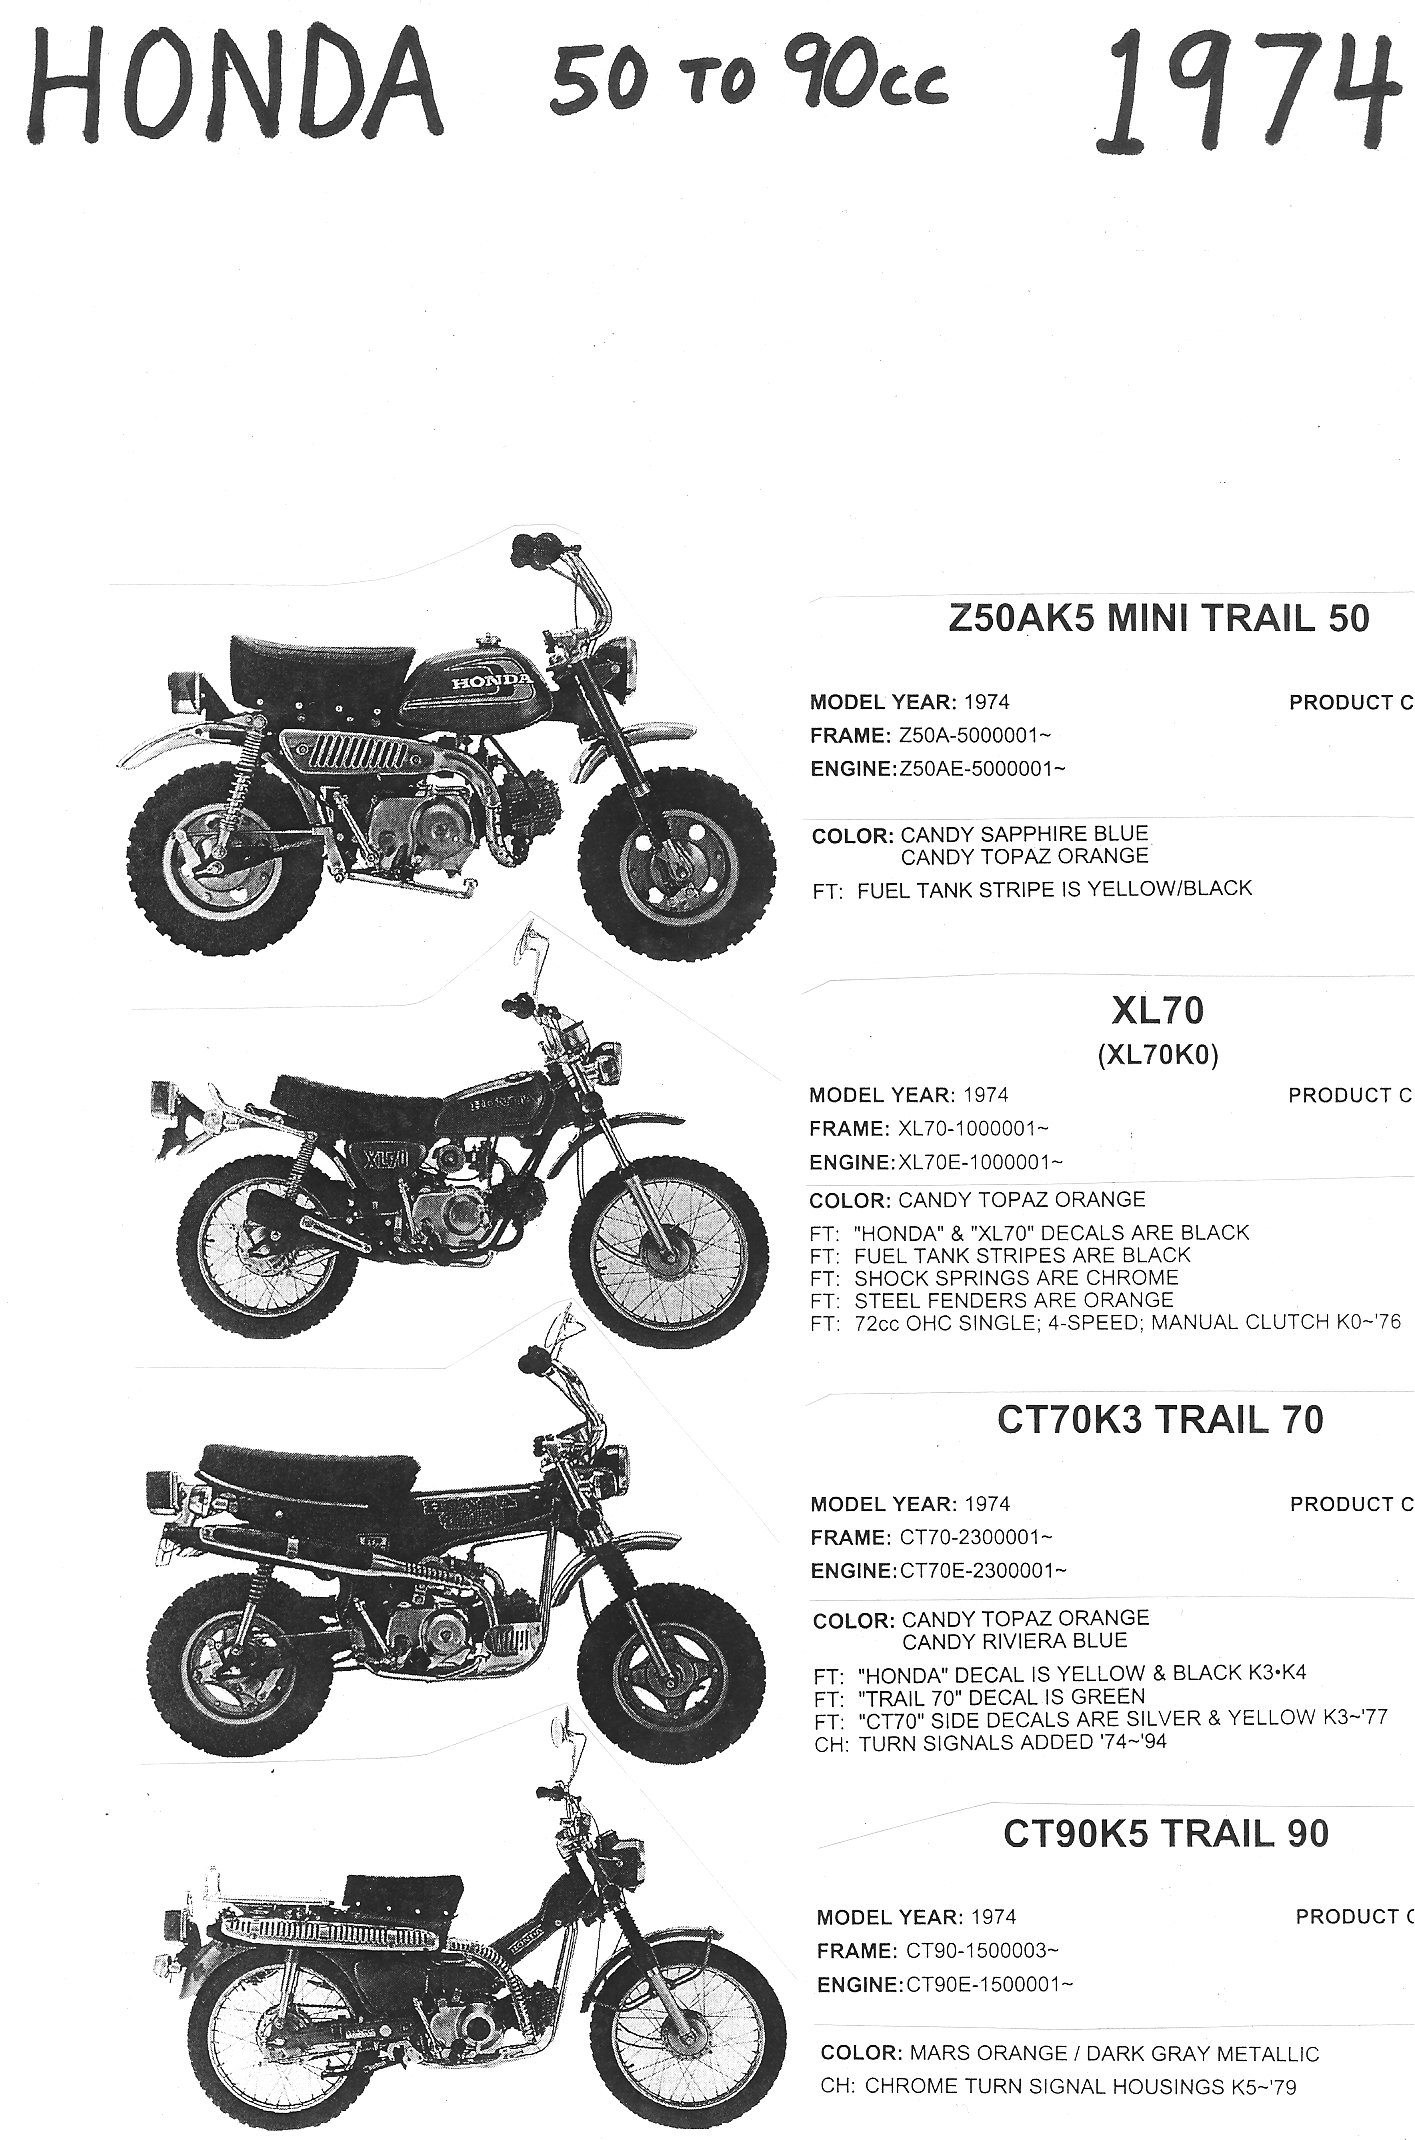 bmw k1 wiring diagram with Honda Atv Wiring Diagrams Gantt Chart Explanation on Ultima Alternator Wiring Diagram likewise Honda Ca175 Wiring Diagram further 70q57 Bmw X5 3 0 D Fuel Inj Problem further Suzuki Gs750 Wiring Diagram in addition 12v 40a Relay.